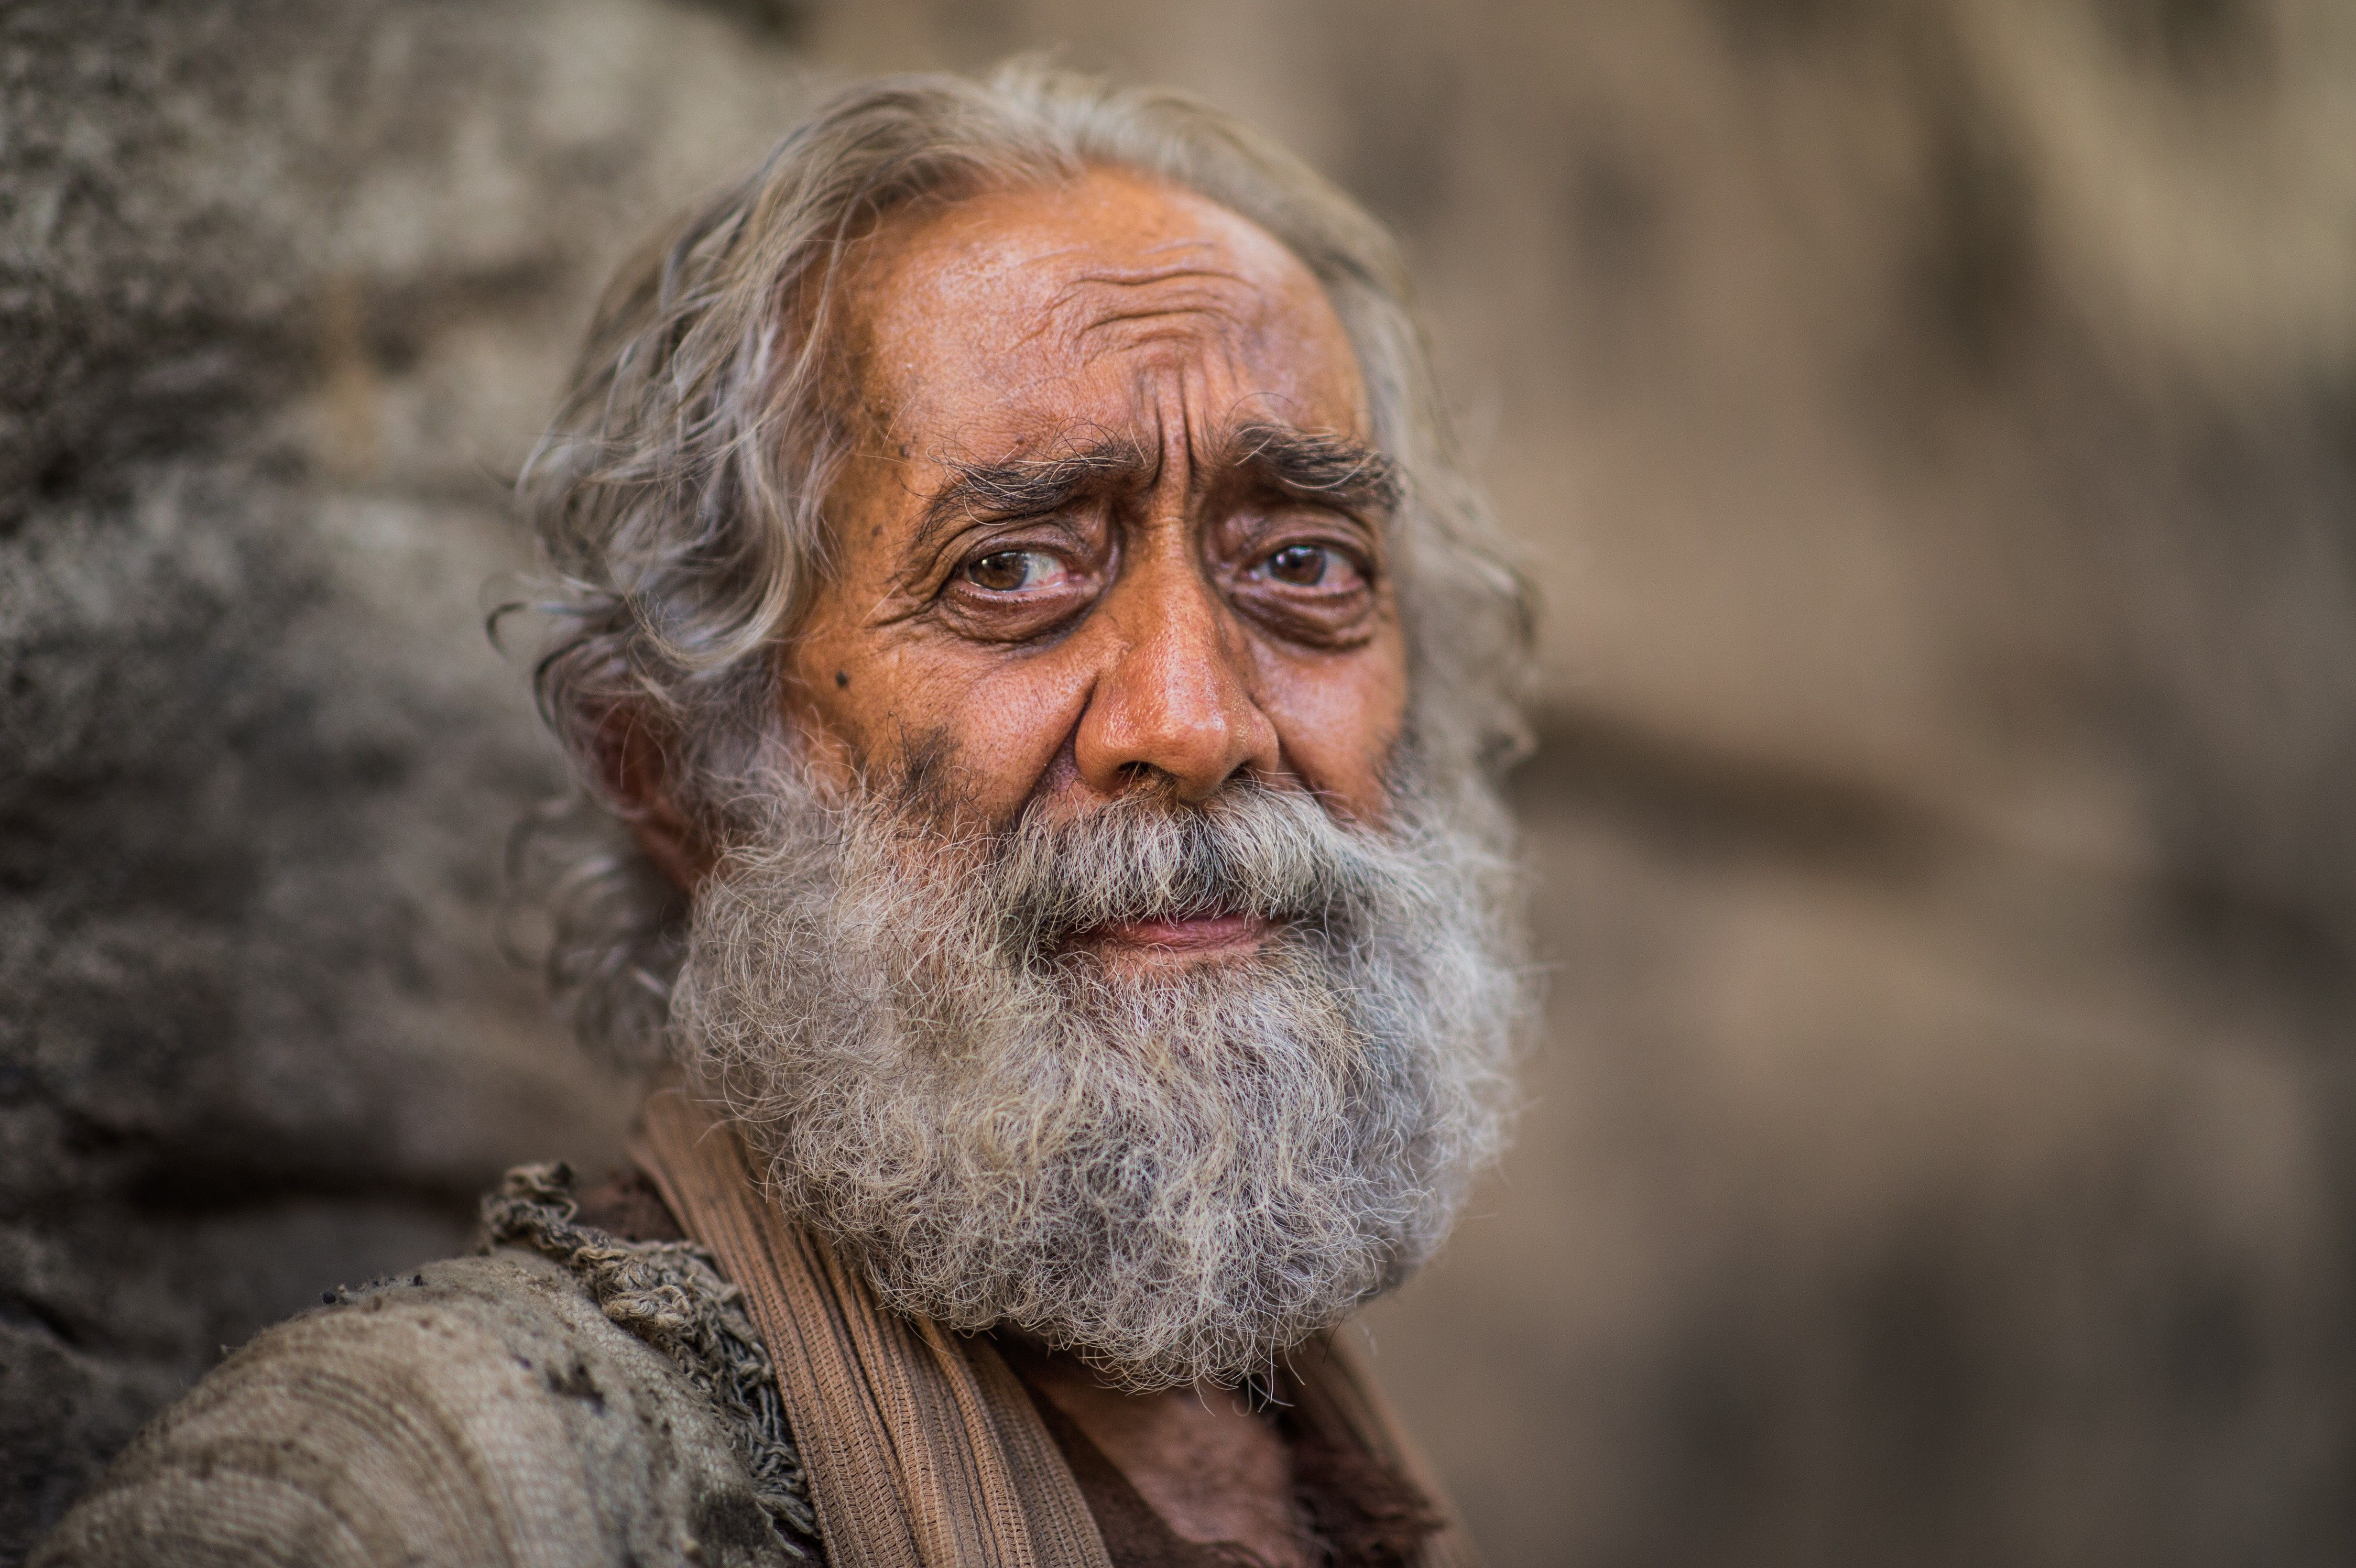 A portrait of the man healed by Jesus Christ at the pool of Bethesda.